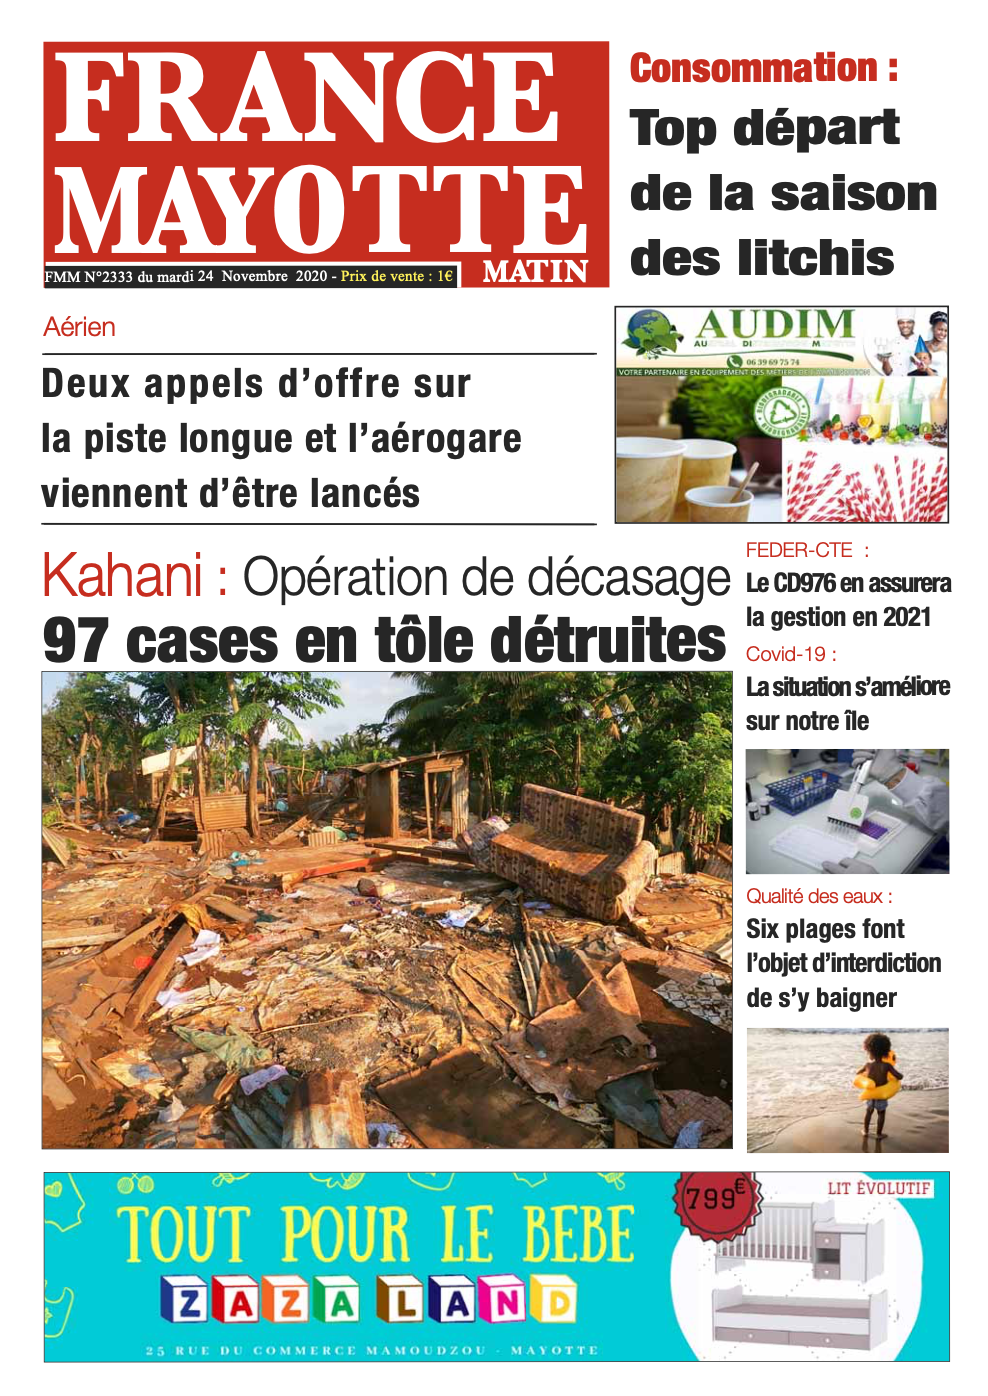 France Mayotte Mardi 24 novembre 2020